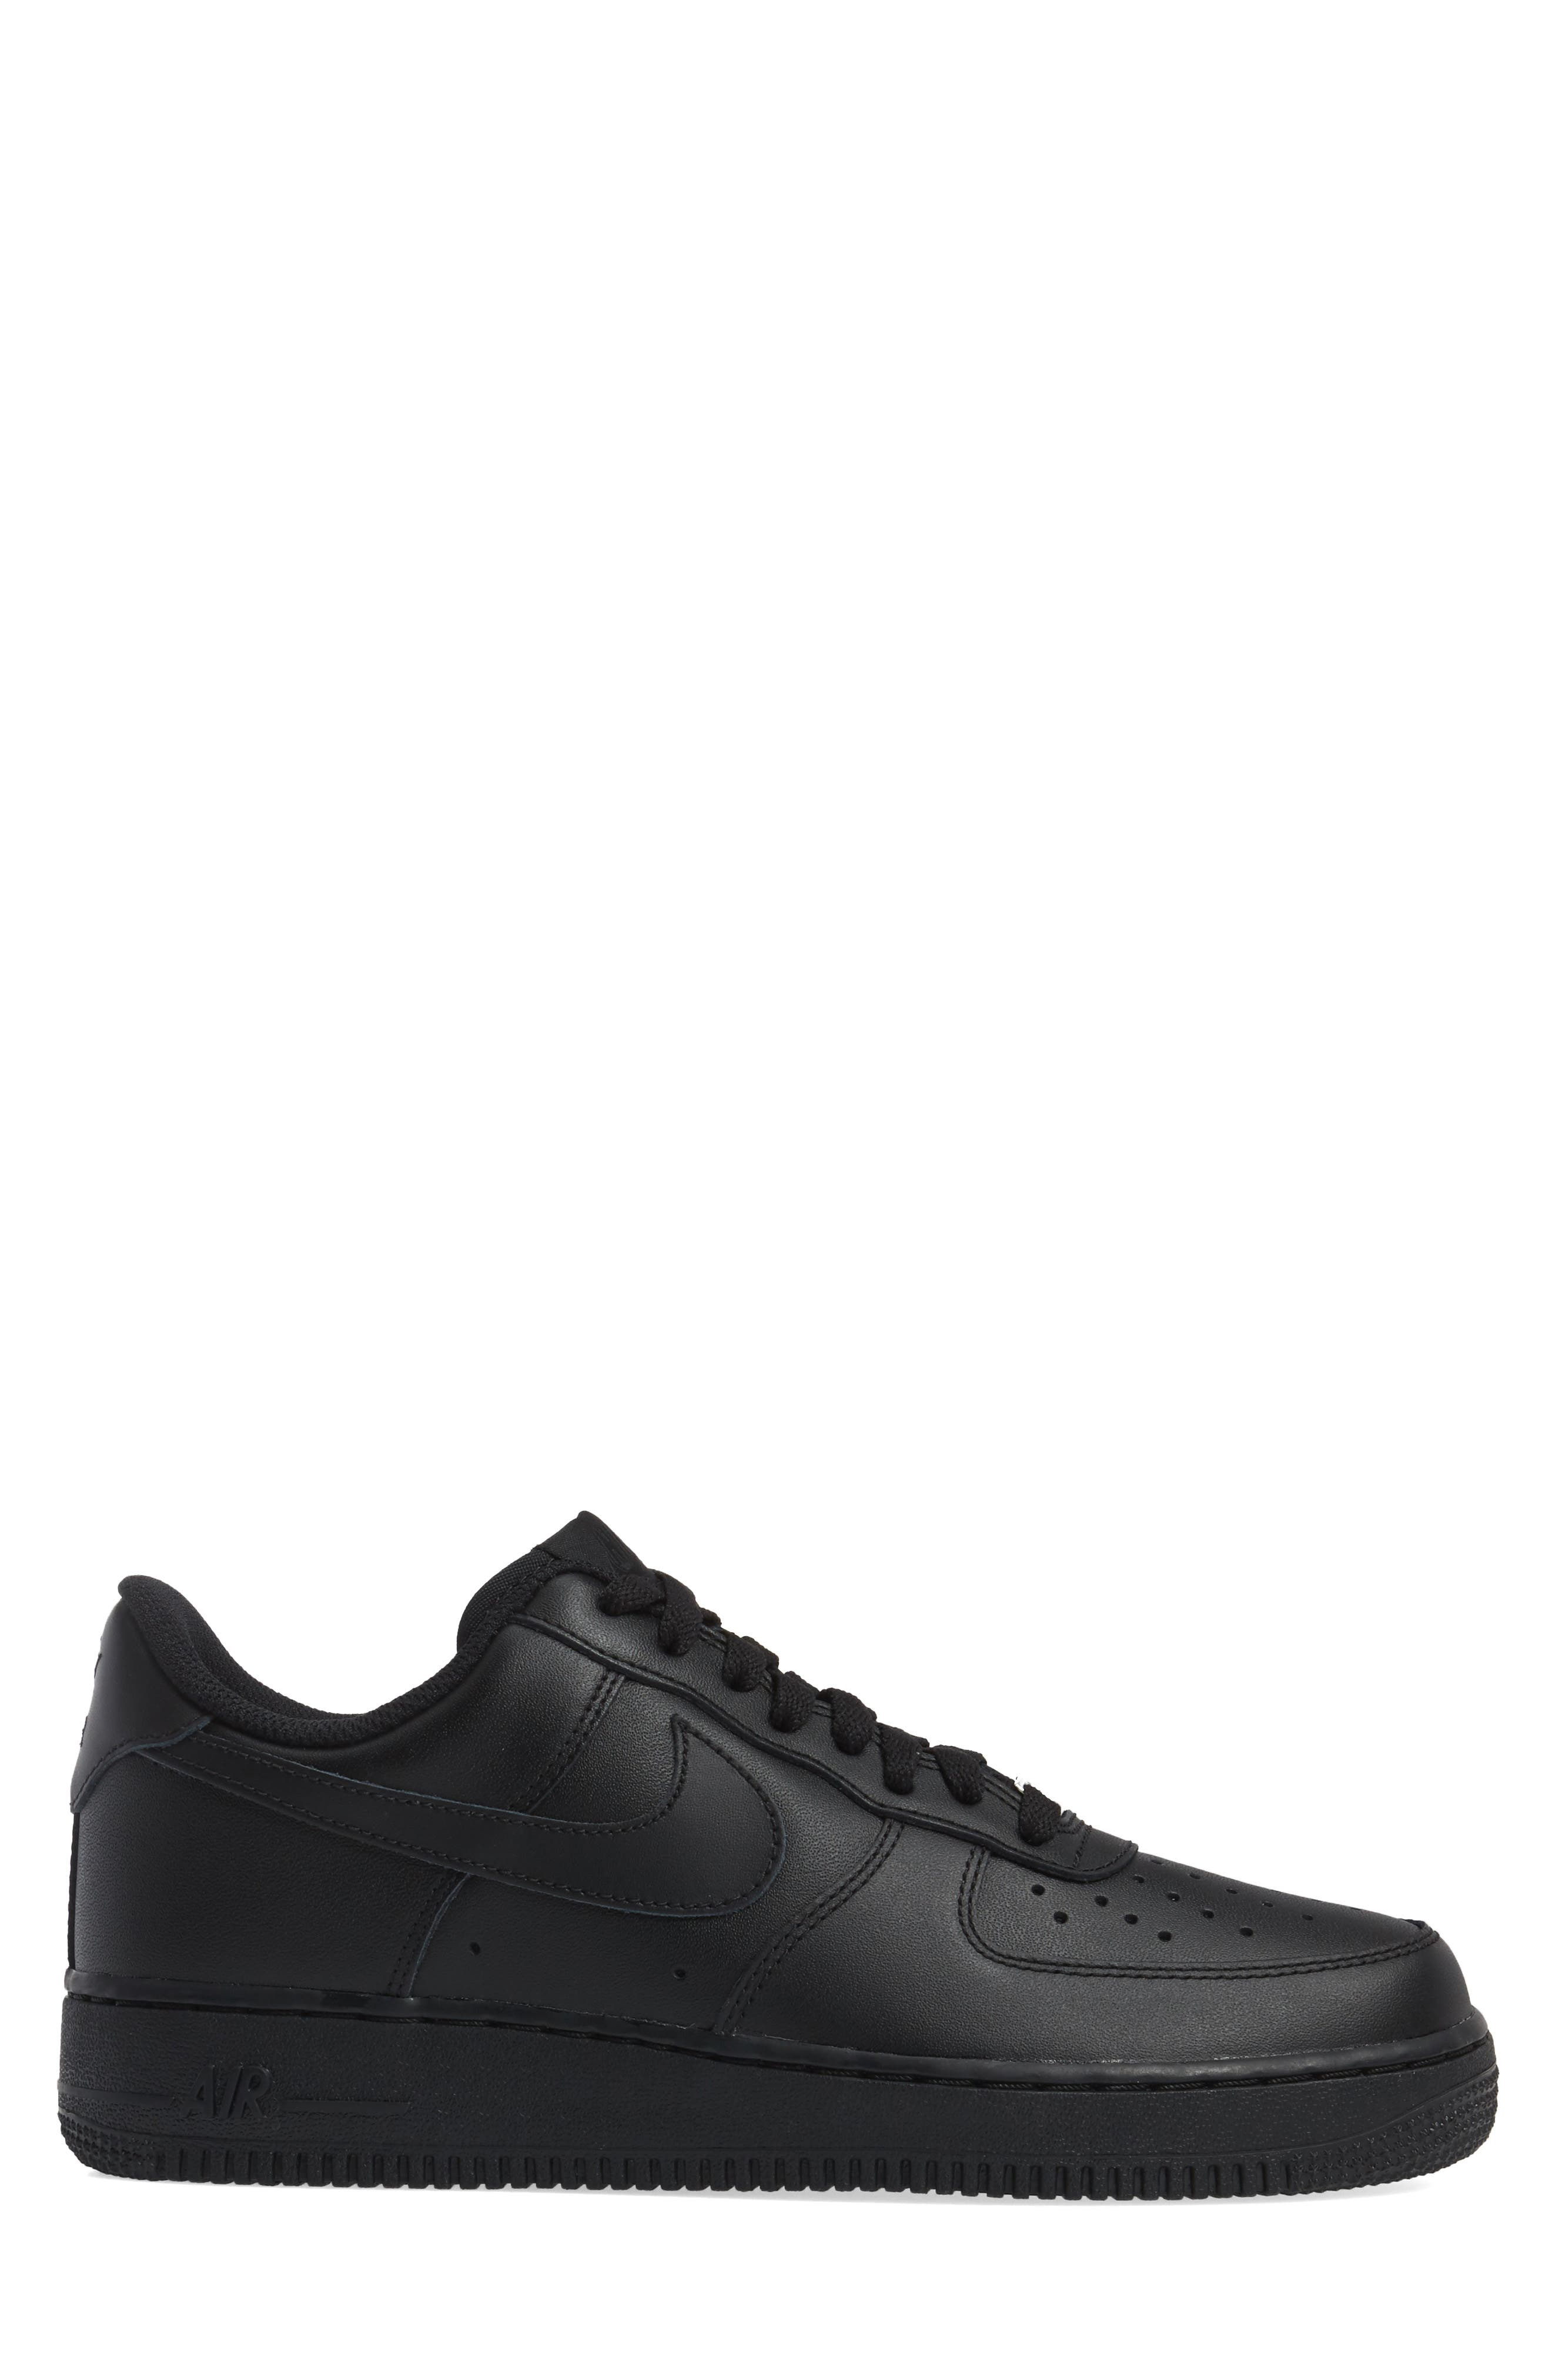 Air Force 1 '07 Sneaker,                             Alternate thumbnail 3, color,                             Black/ Black